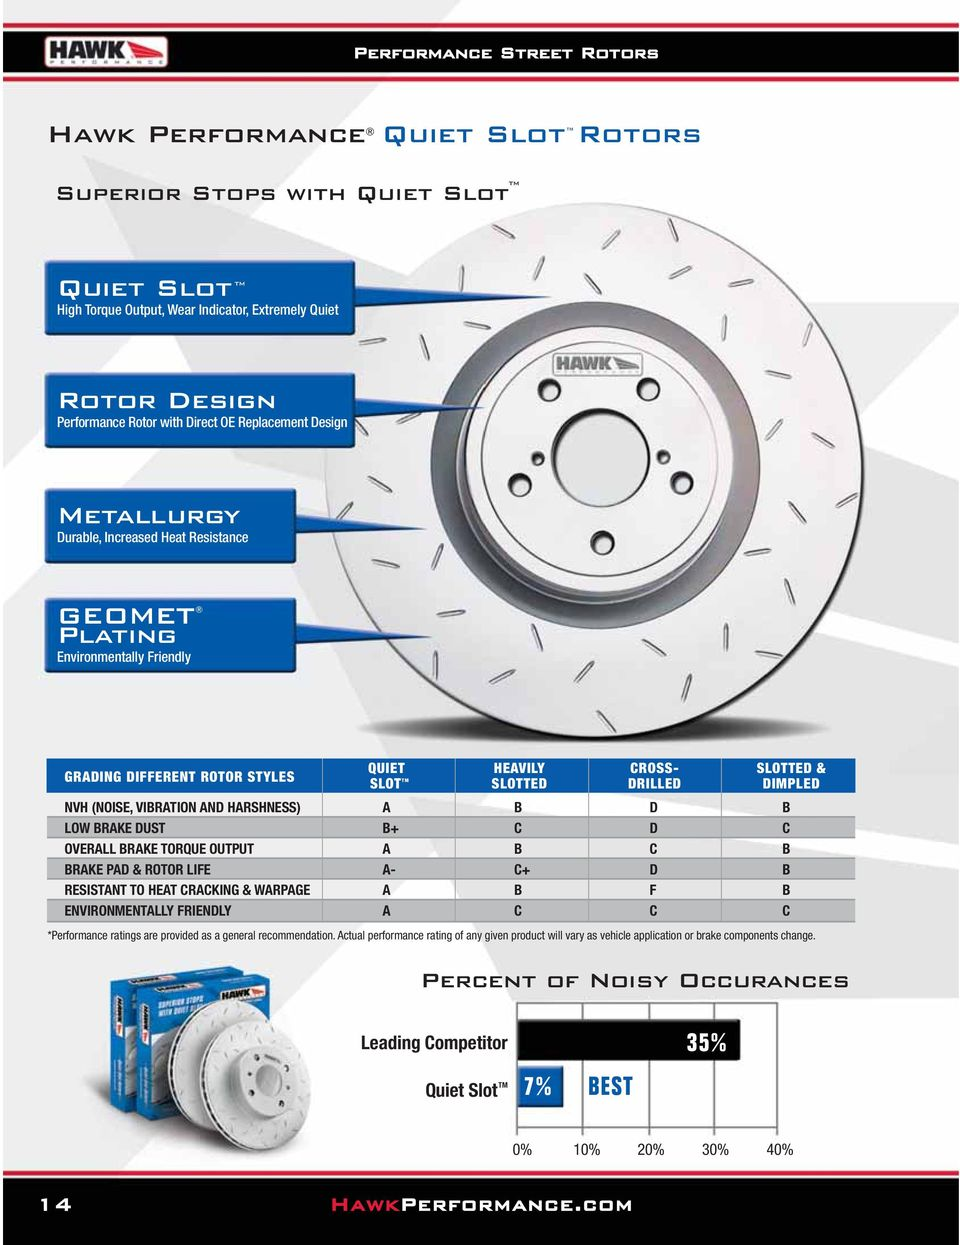 DRILLED DIMPLED NVH (NOISE, VIBRATION AND HARSHNESS) A B D B LOW BRAKE DUST B+ C D C OVERALL BRAKE TORQUE OUTPUT A B C B BRAKE PAD & ROTOR LIFE A- C+ D B RESISTANT TO HEAT CRACKING & WARPAGE A B F B